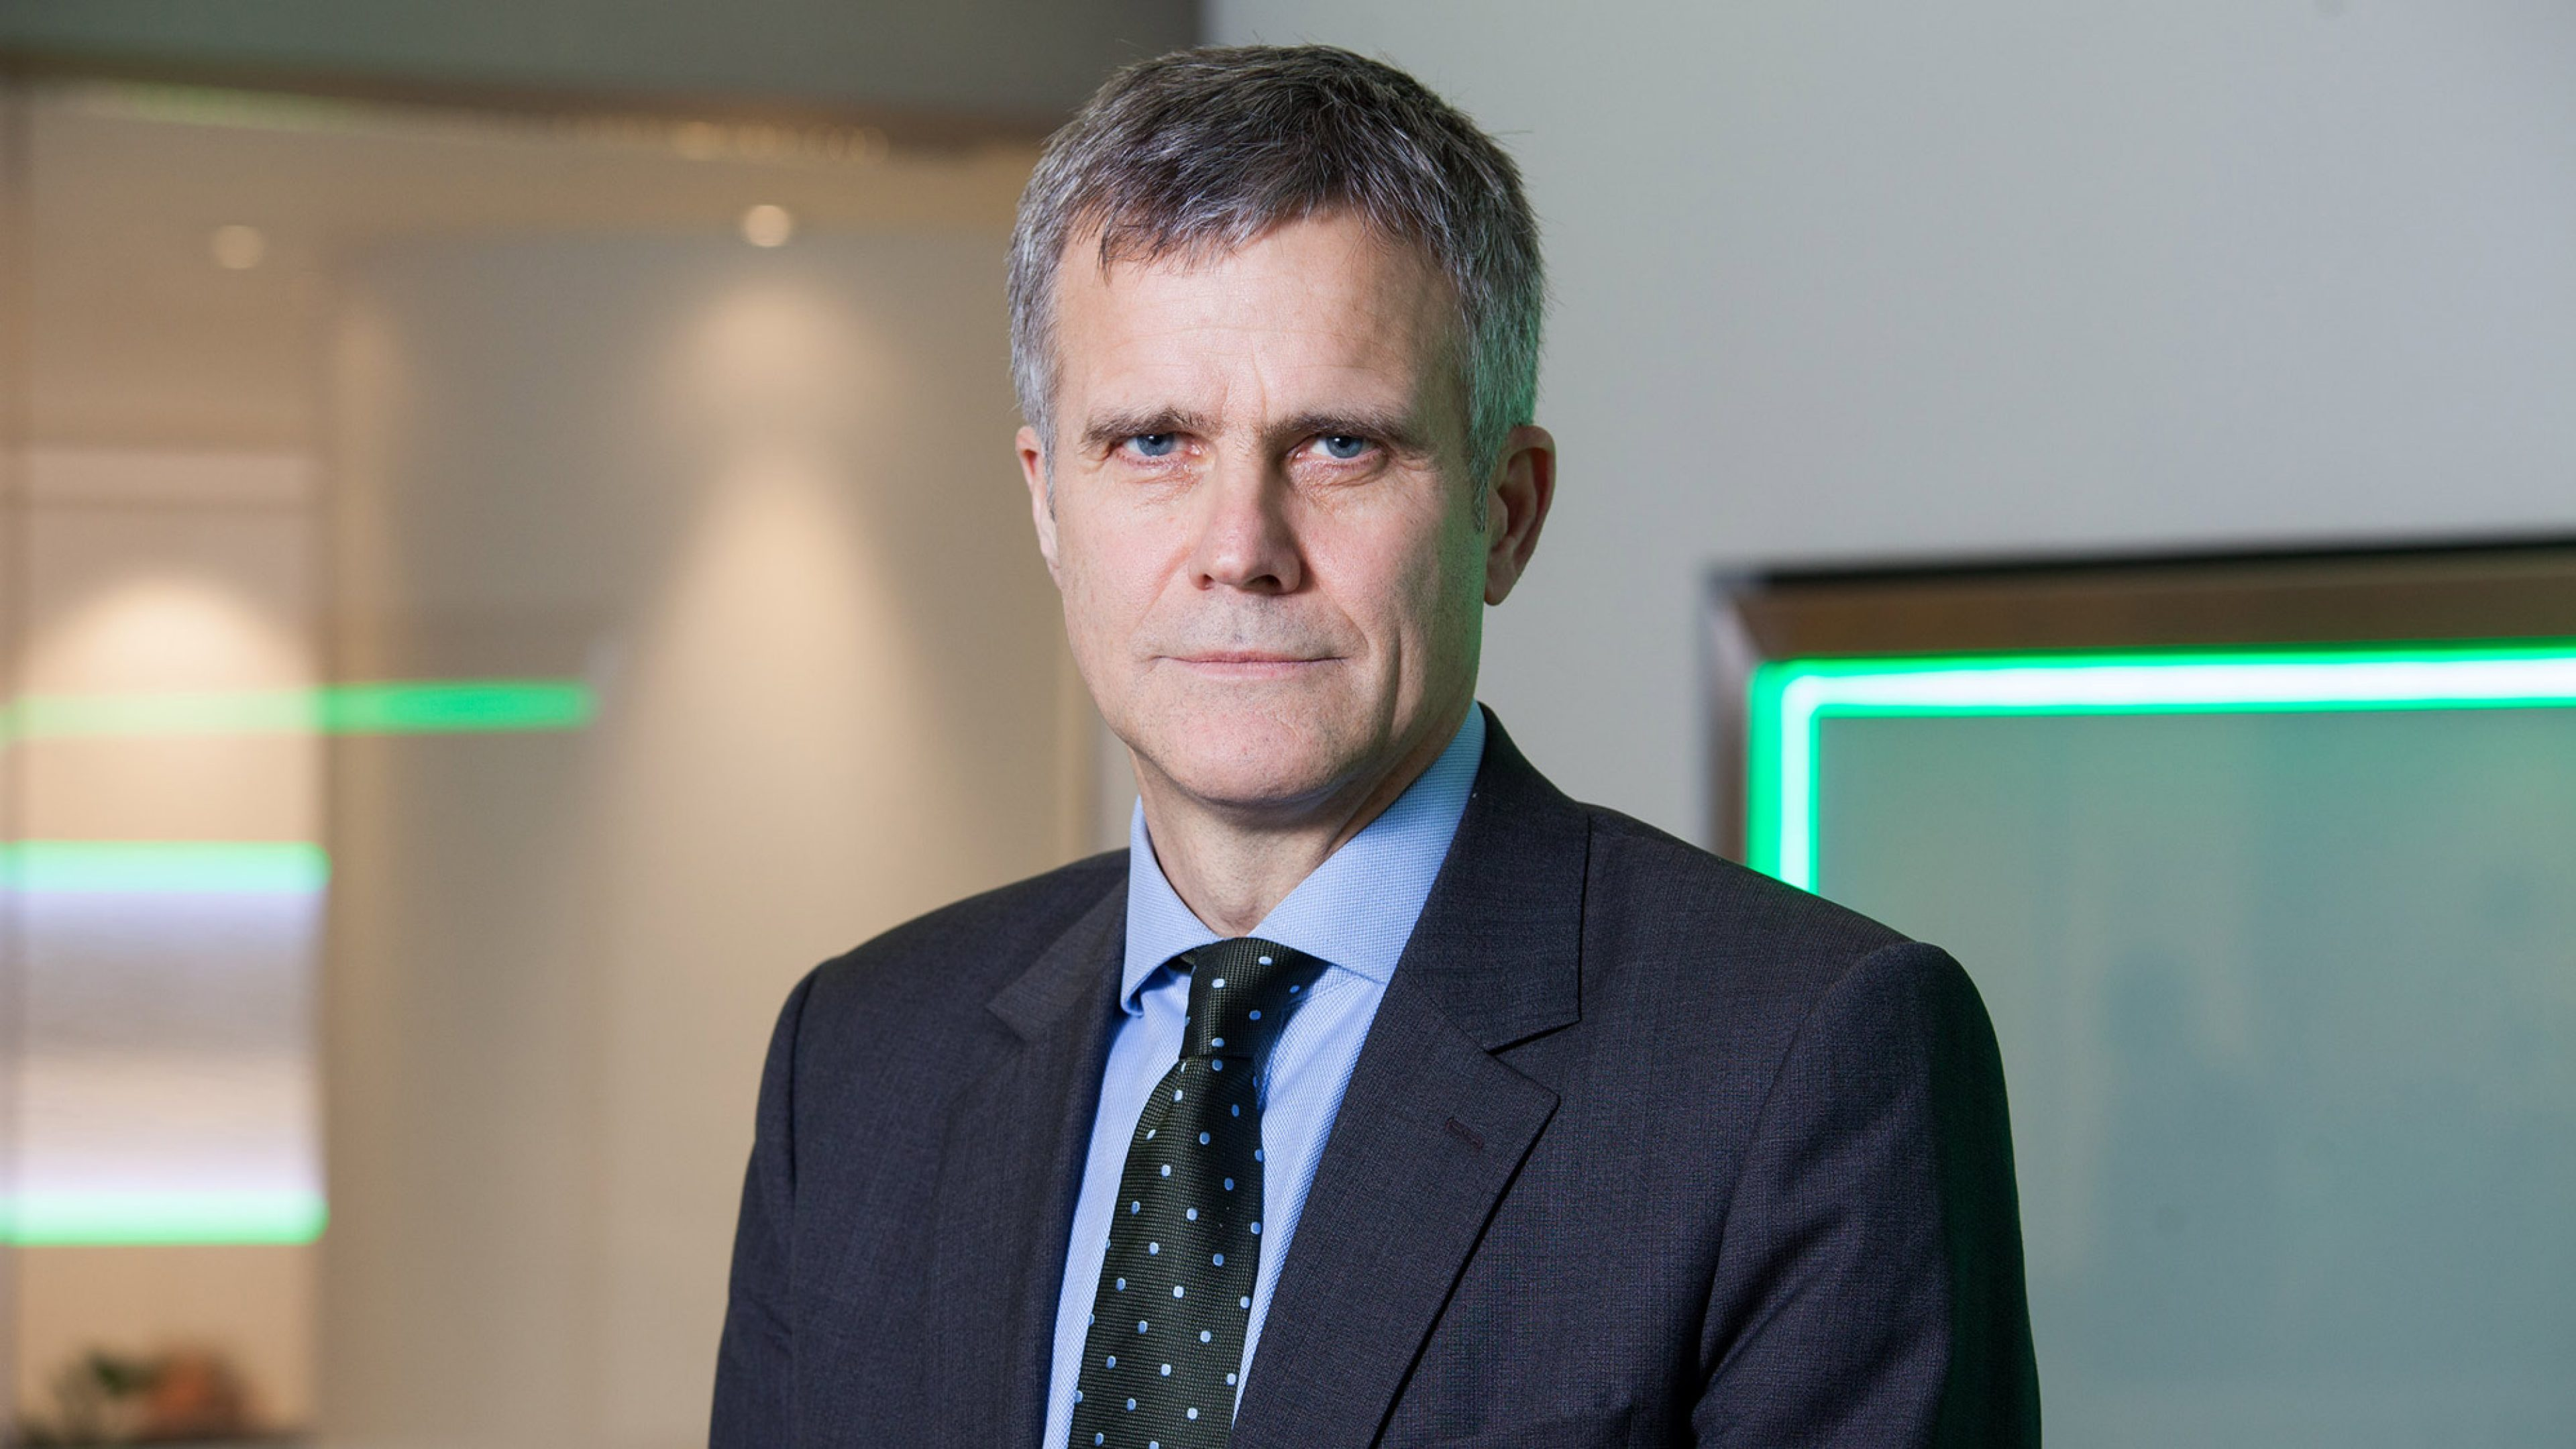 Helge Lund, chairman